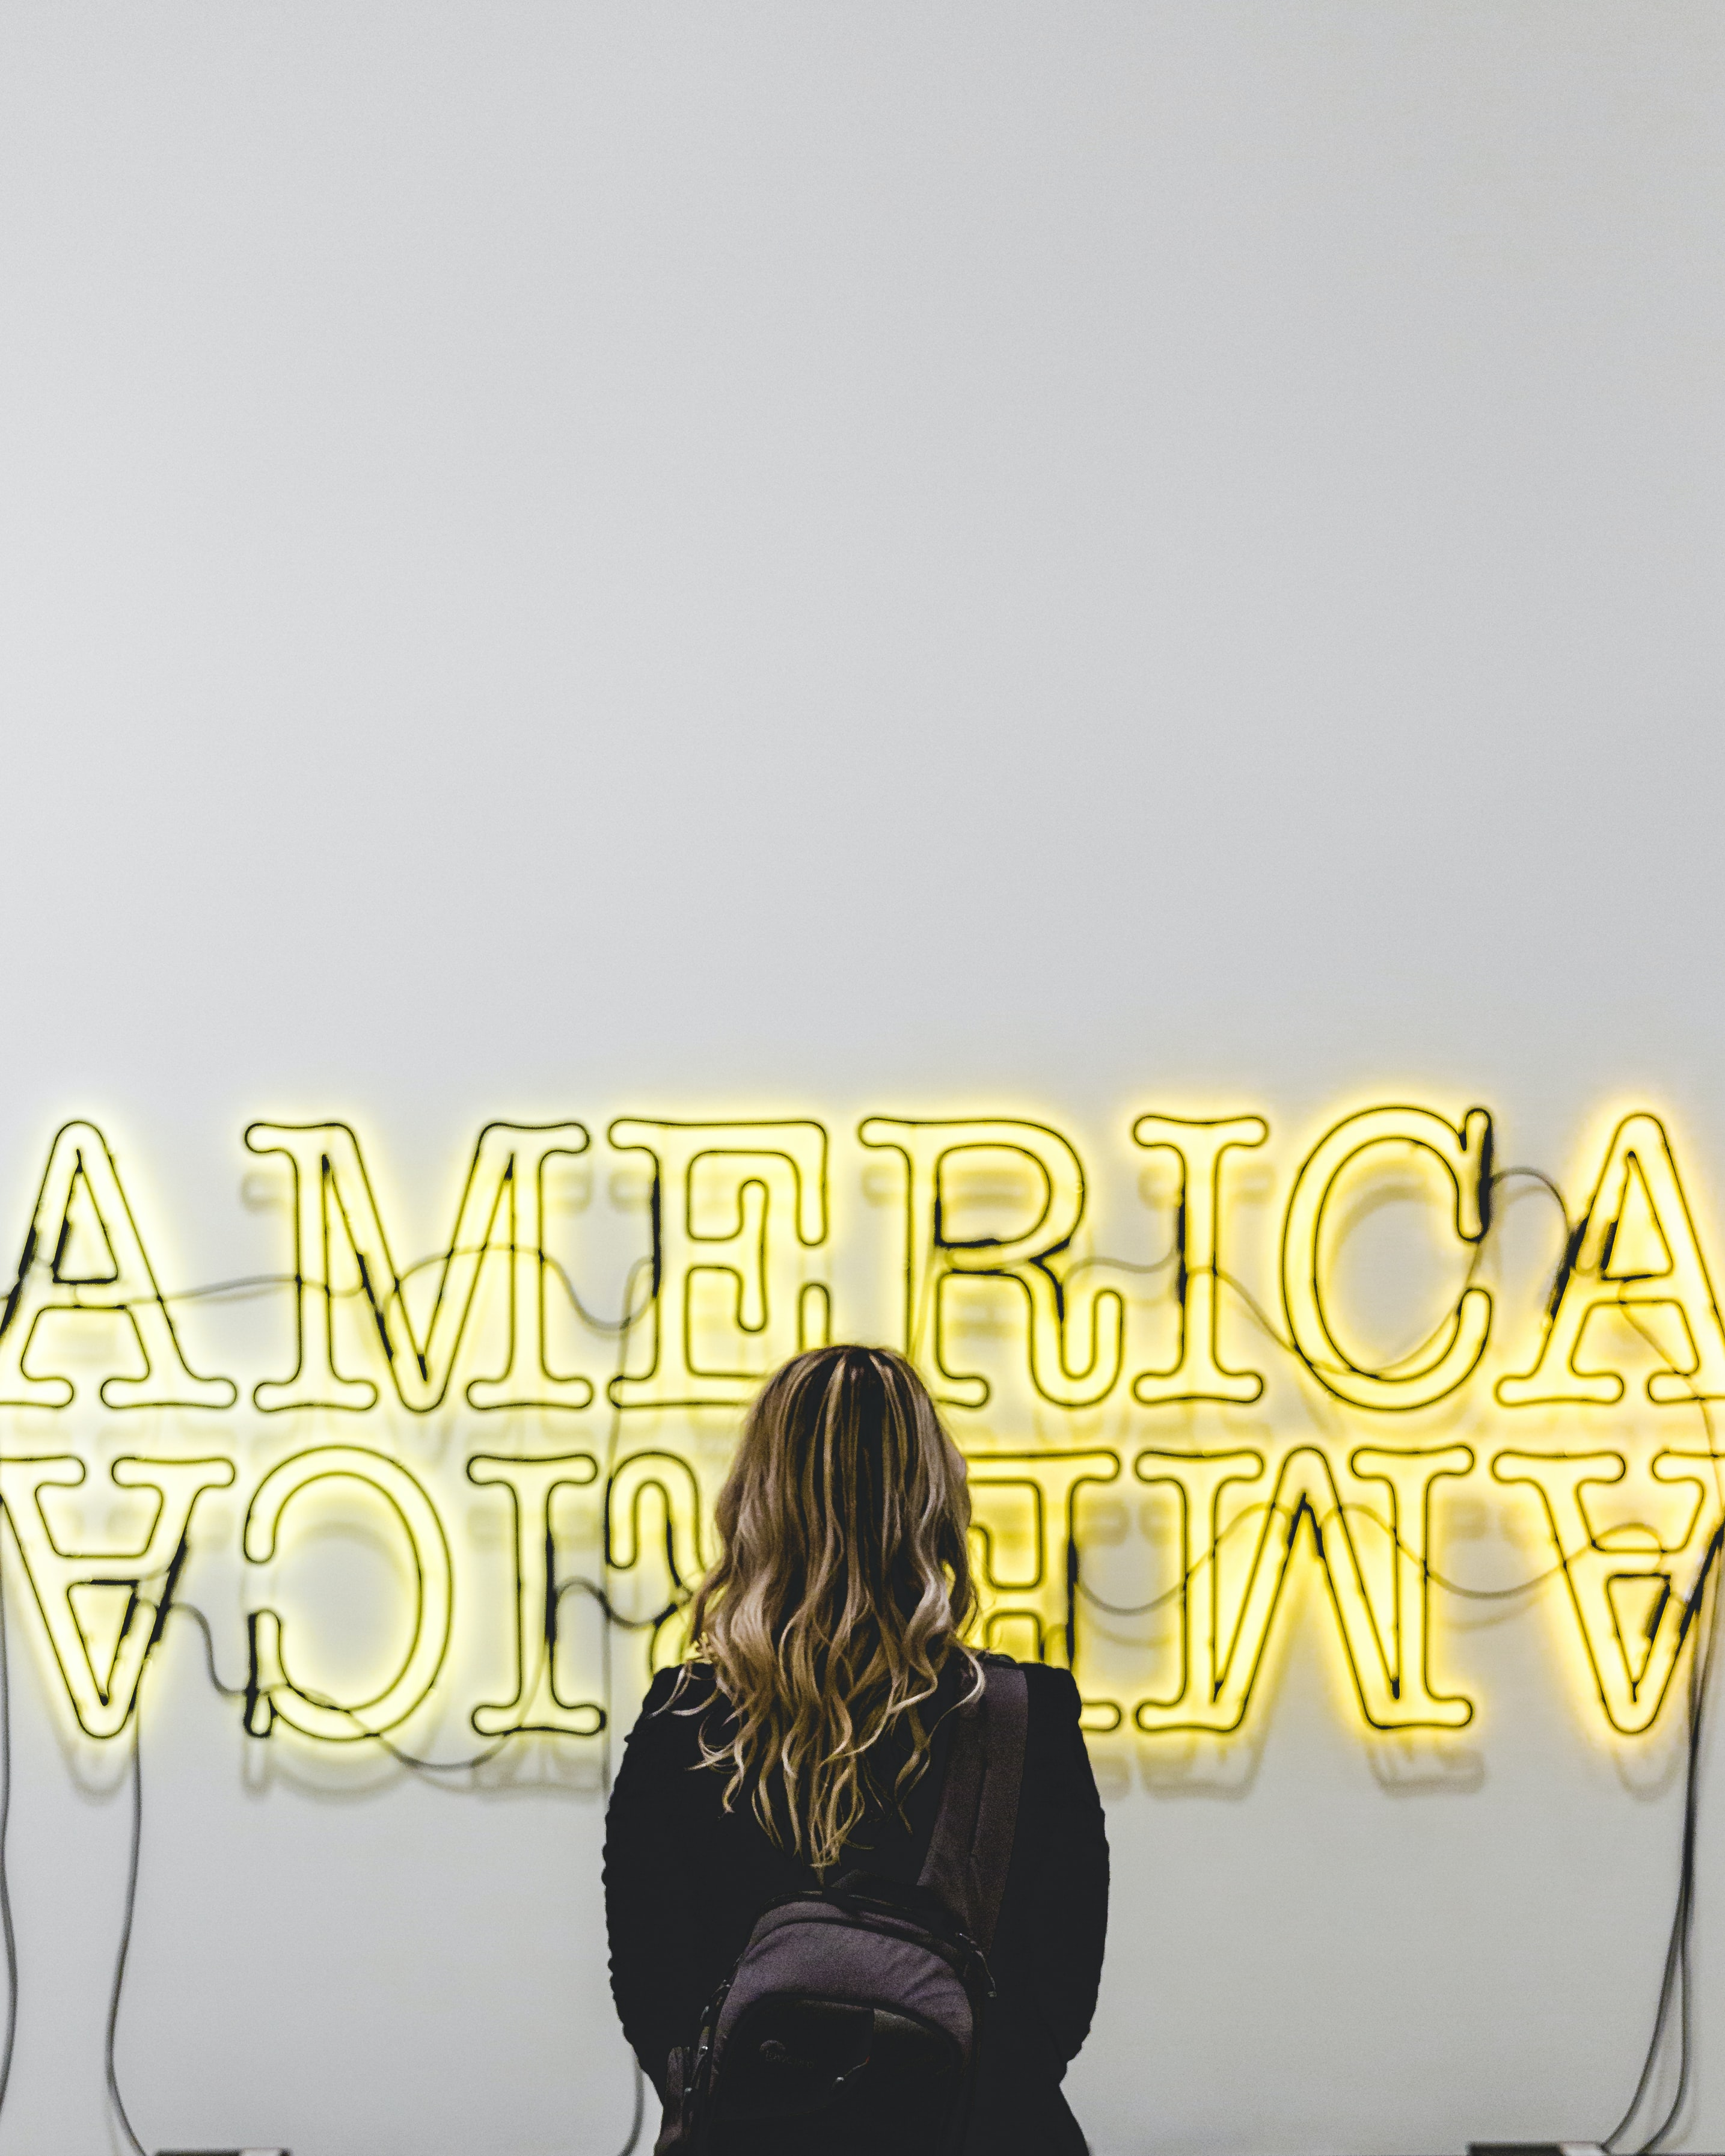 A long-haired woman stares at a neon sign at The Broad, a museum in Los Angeles, California